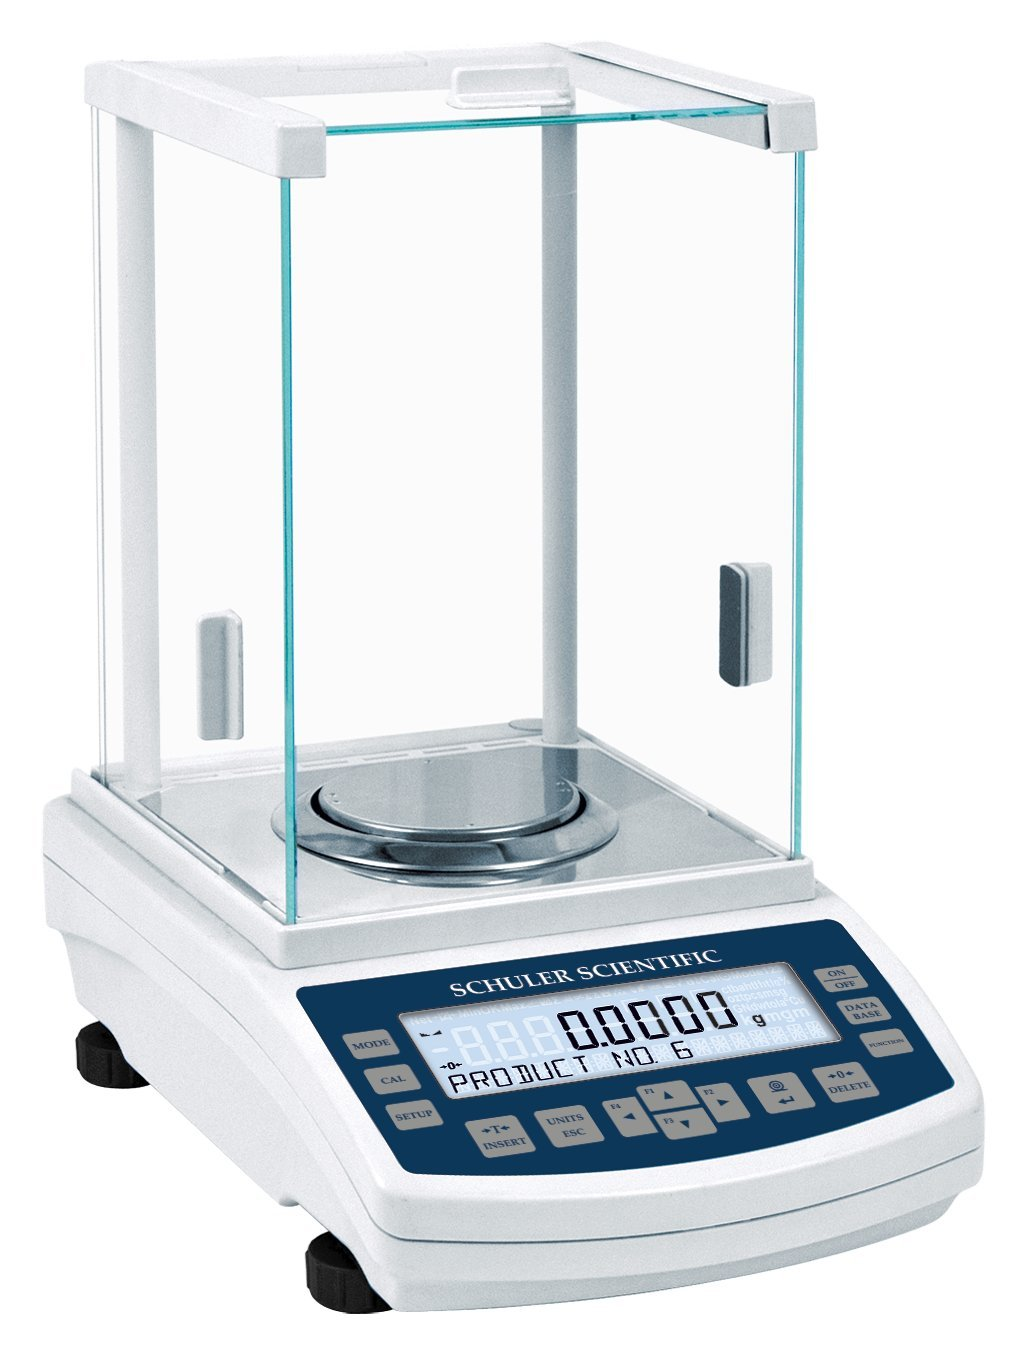 Schuler Scientific SAS-164 A Series Analytical Balance with 160g Capacity and 0.1mg Readability